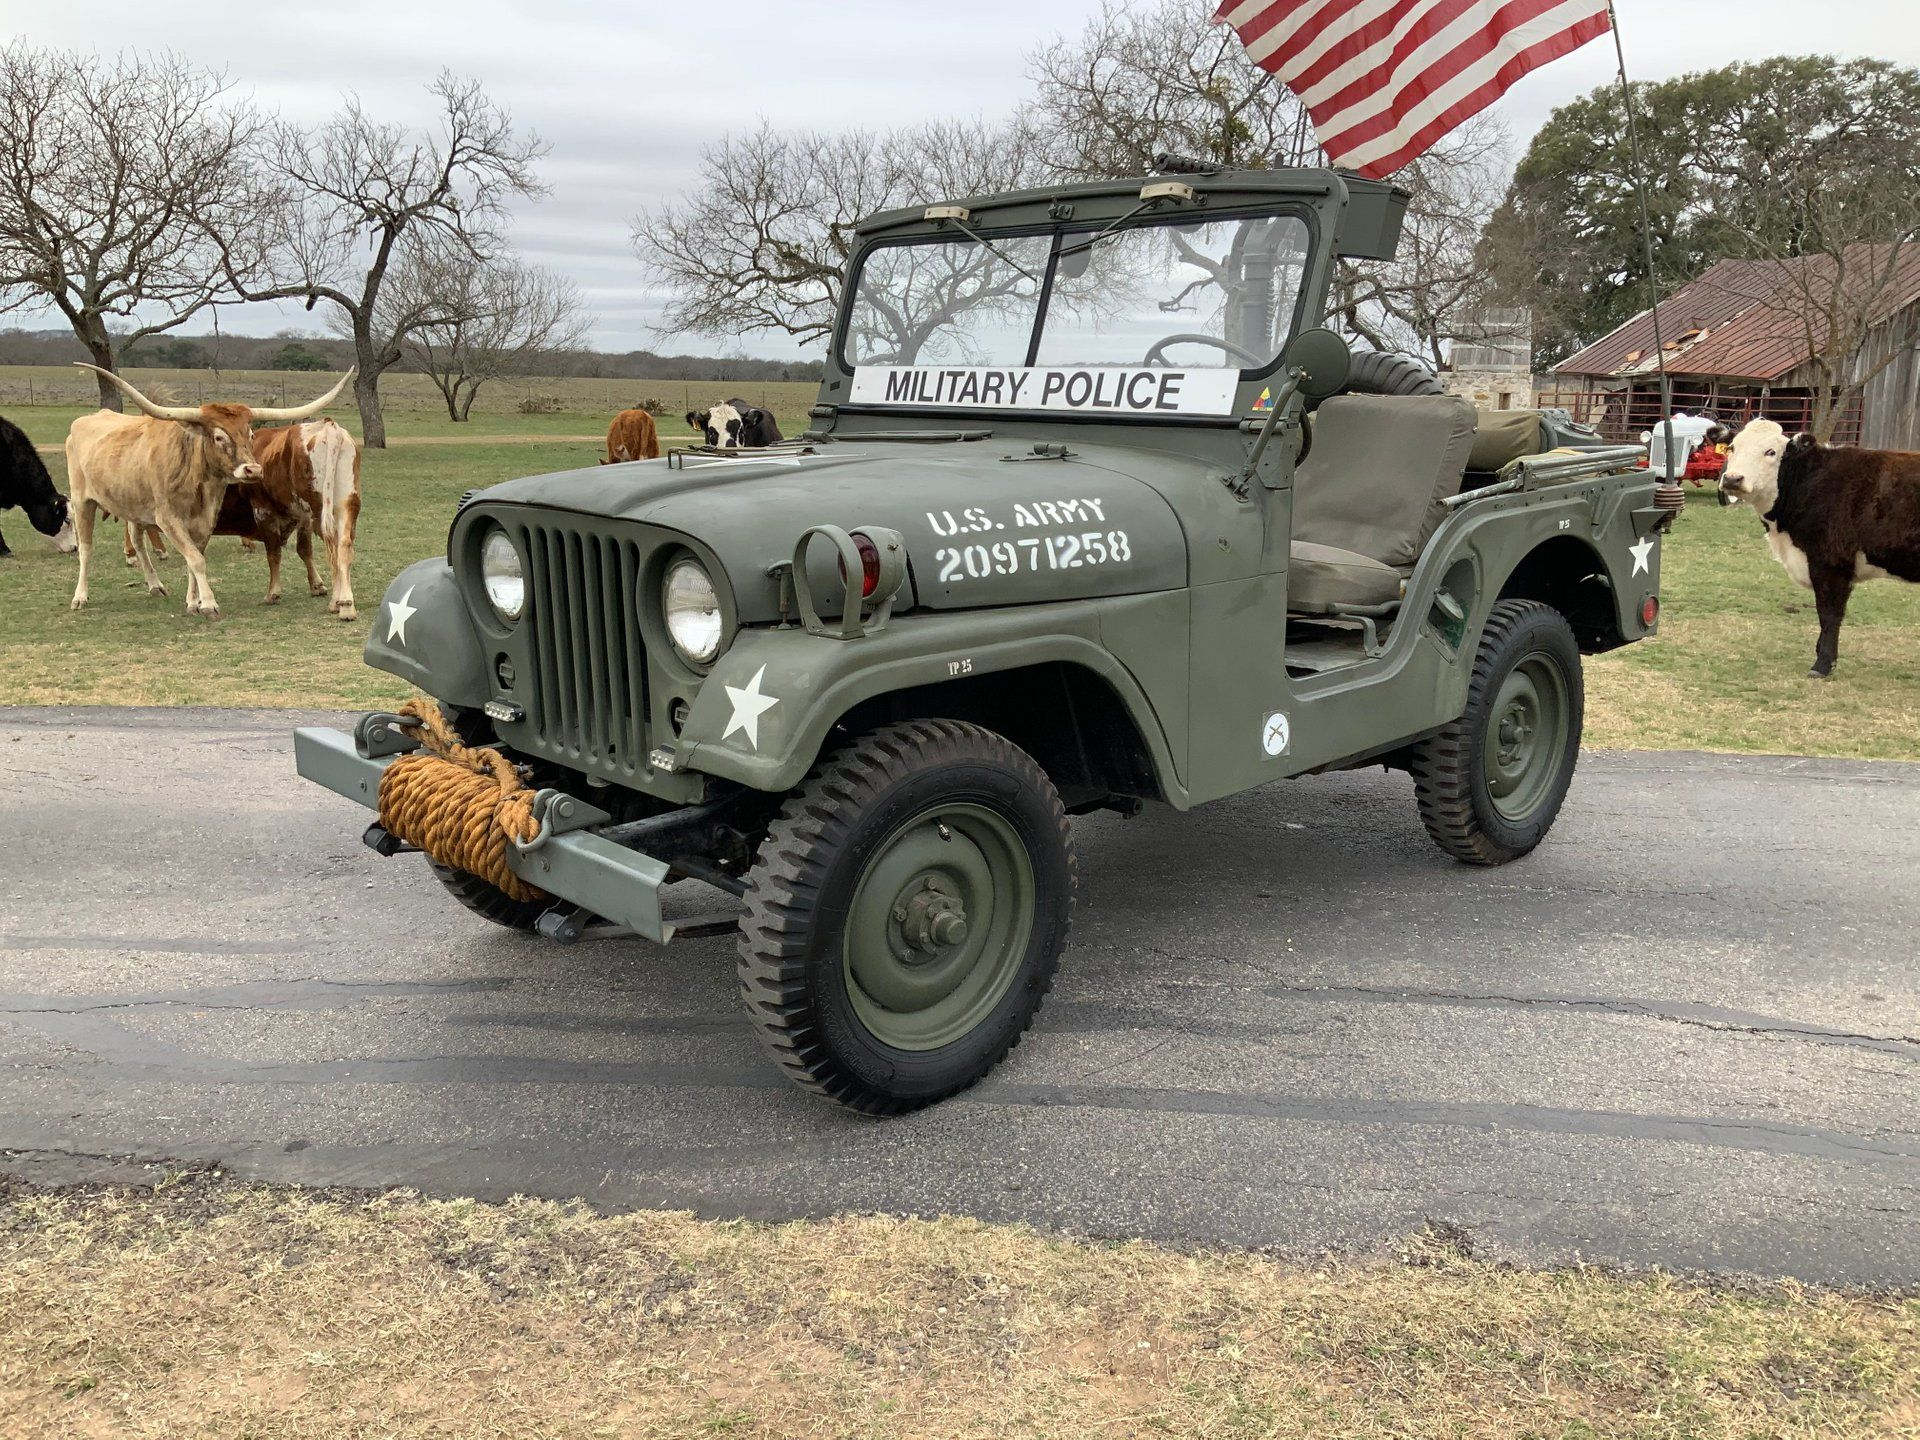 Show Your Patriotism And Buy This 1955 Willys Jeep M38A1